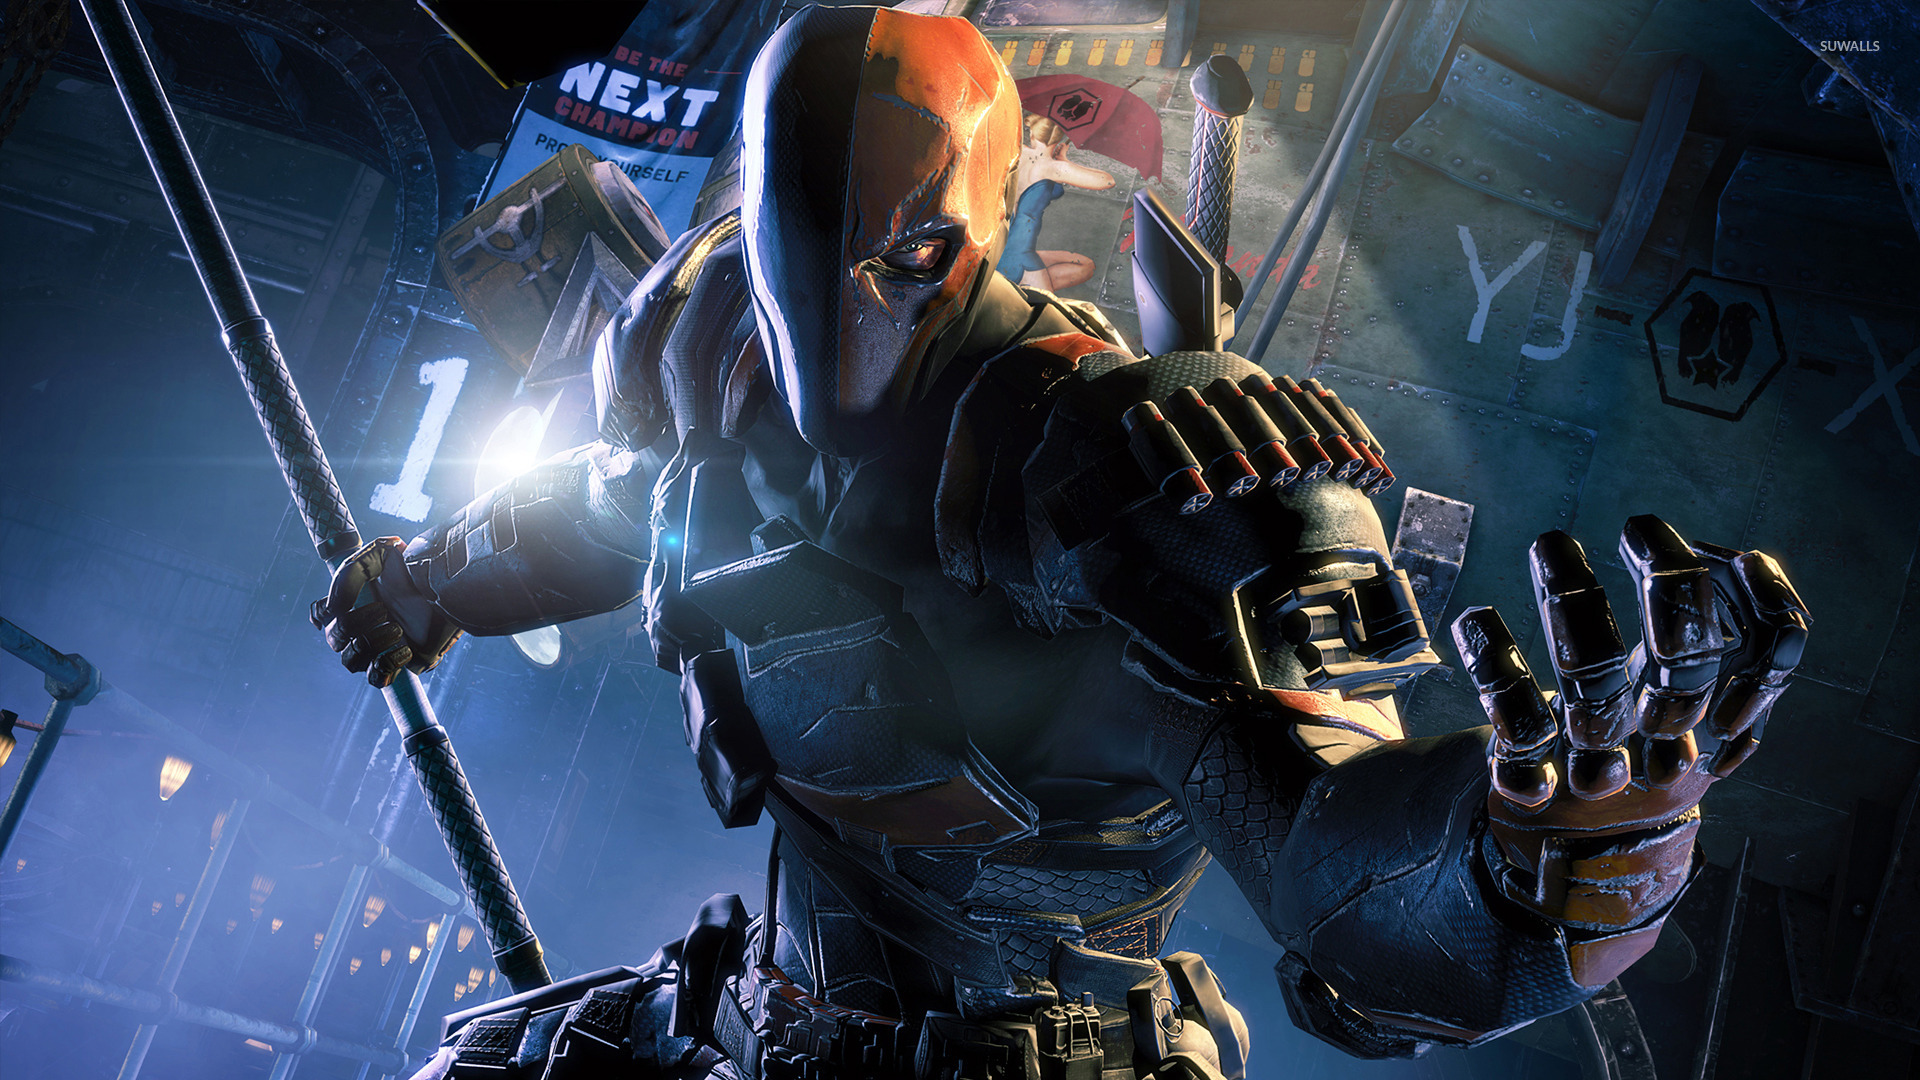 Deathstroke Batman Arkham Origins Wallpaper 1429325